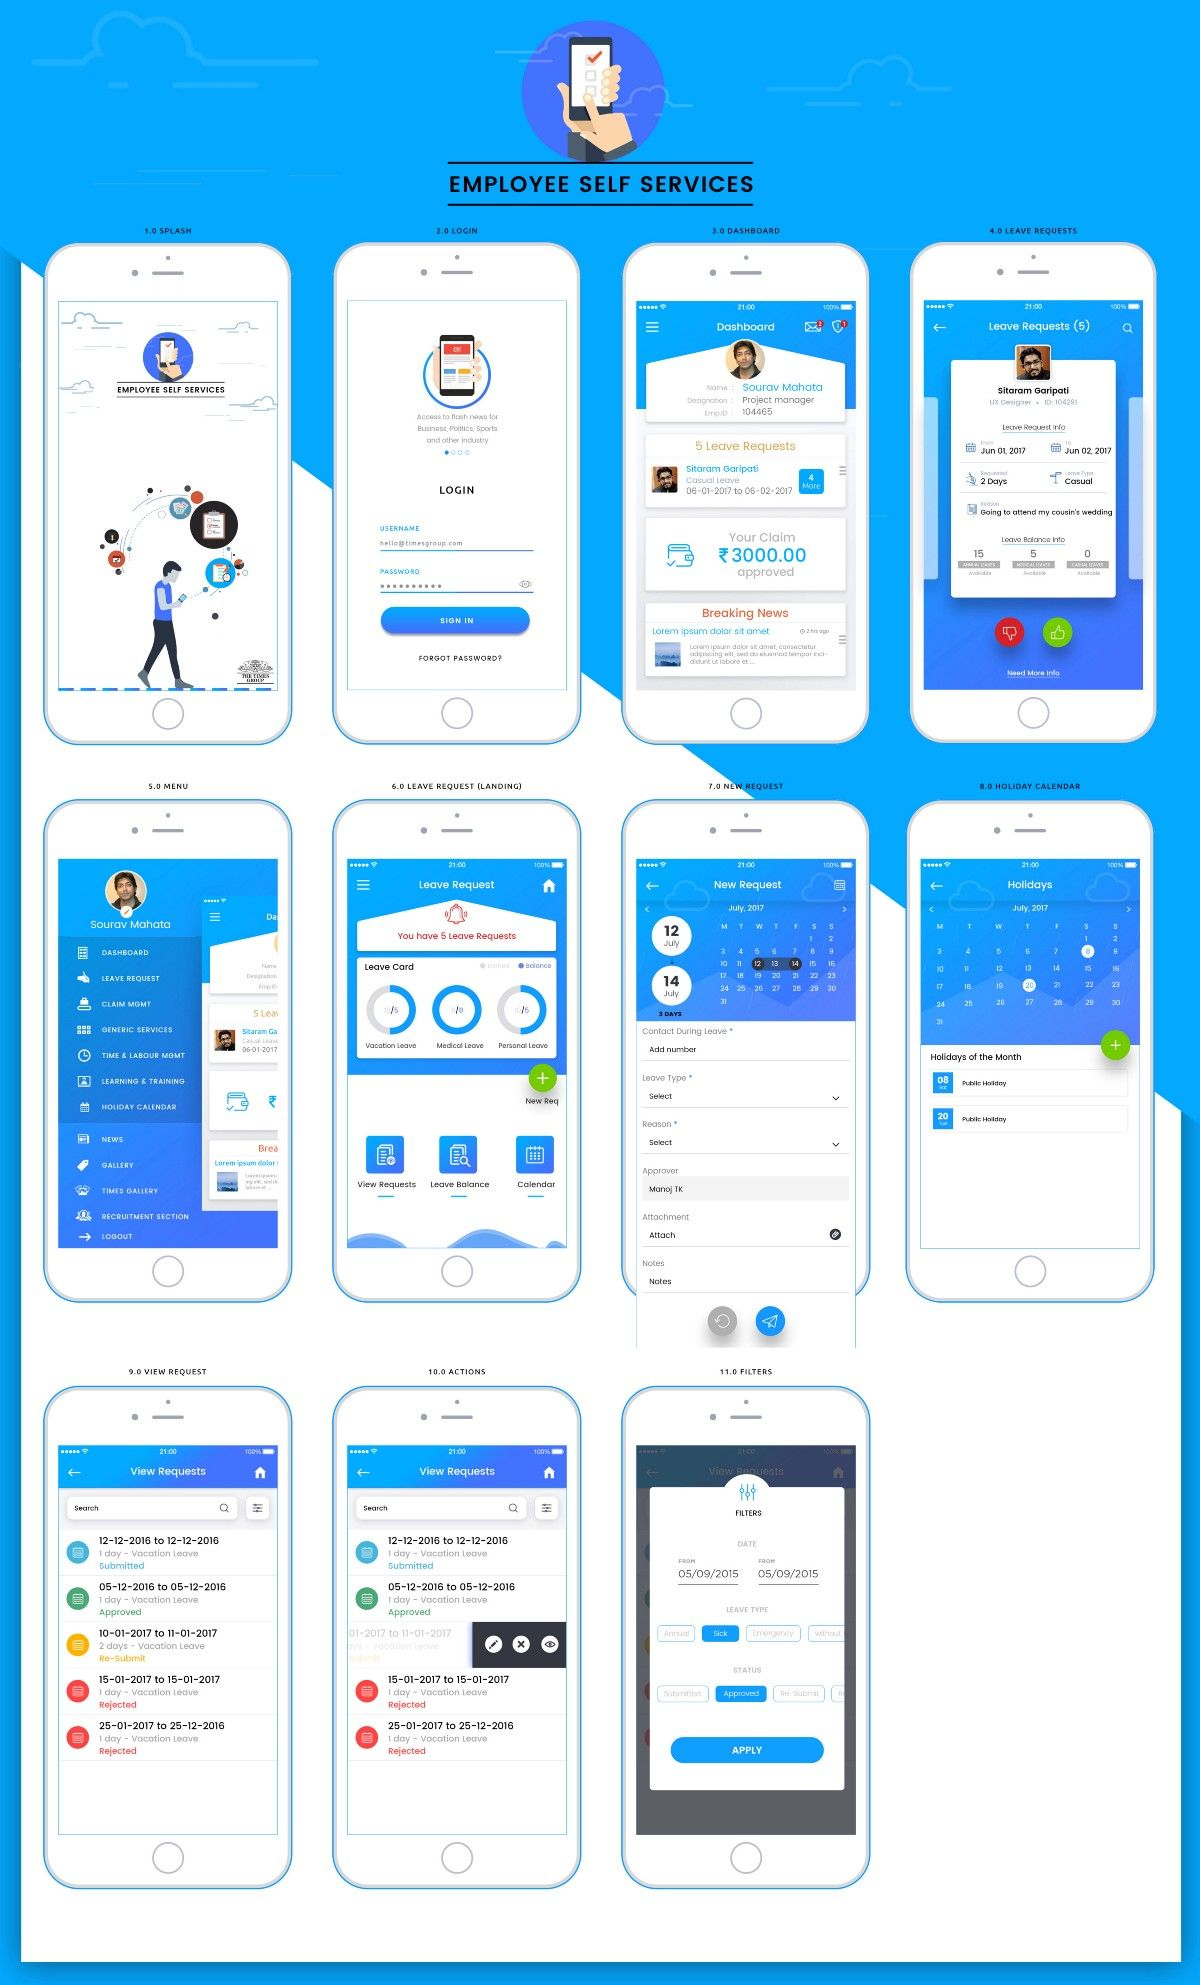 ESS) is mobile app that provide employees with access to